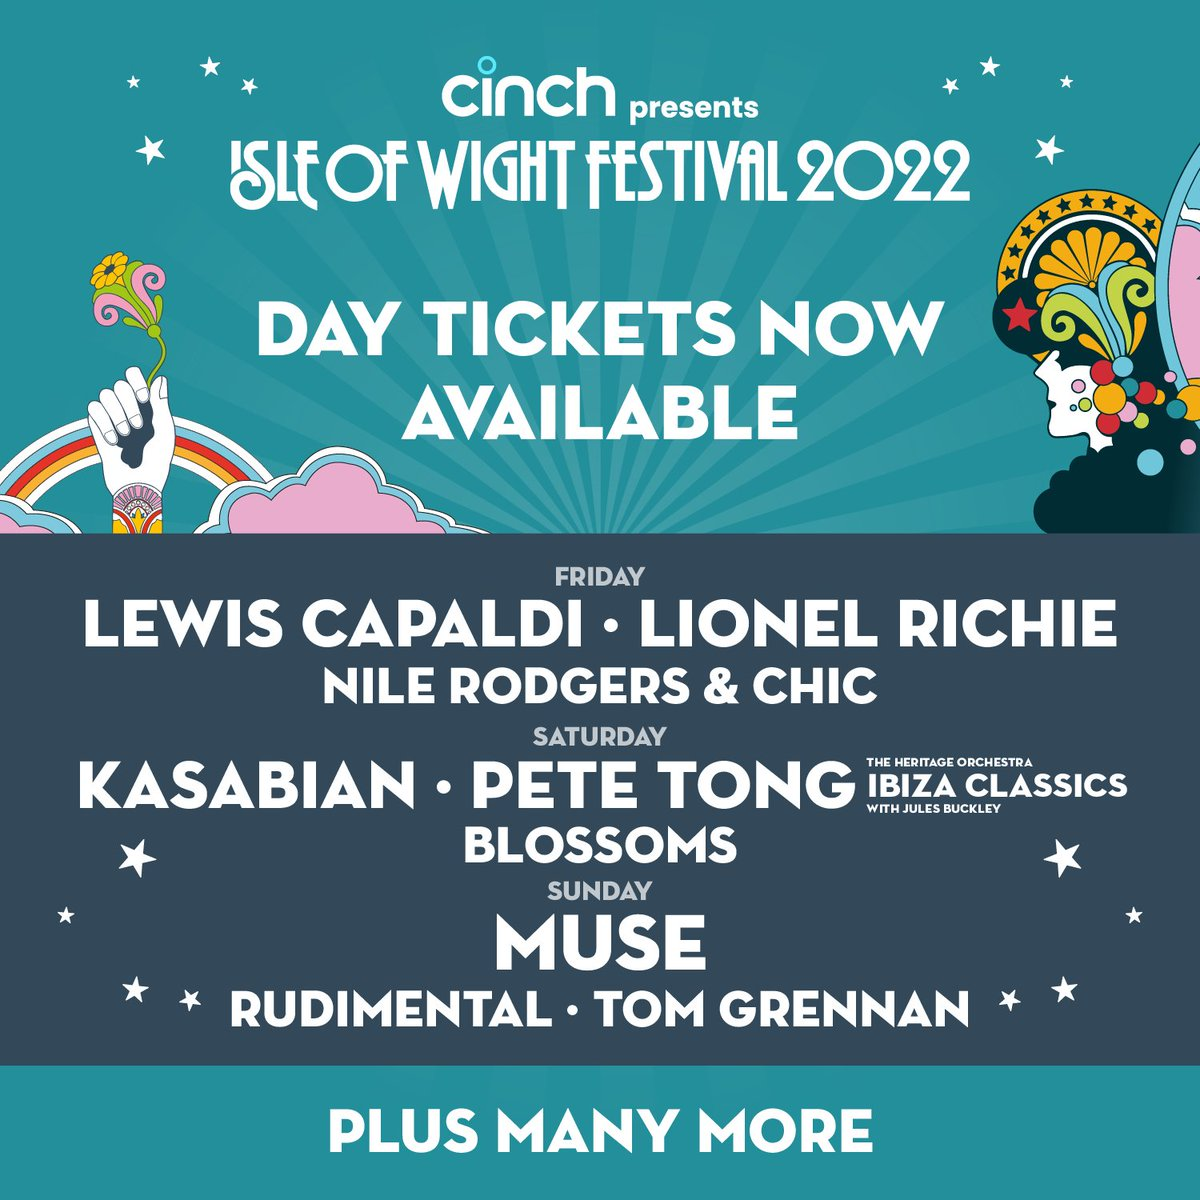 Day tickets for @cinchuk presents the Isle of Wight Festival 2022 are on sale now 🎟️ See main stage headliners @LewisCapaldi, @LionelRichie, @KasabianHQ, @petetong, @muse and more! We cannot wait! Grab your day tickets here: bit.ly/3lkr8e5 #cinchxIOW #IOW2022